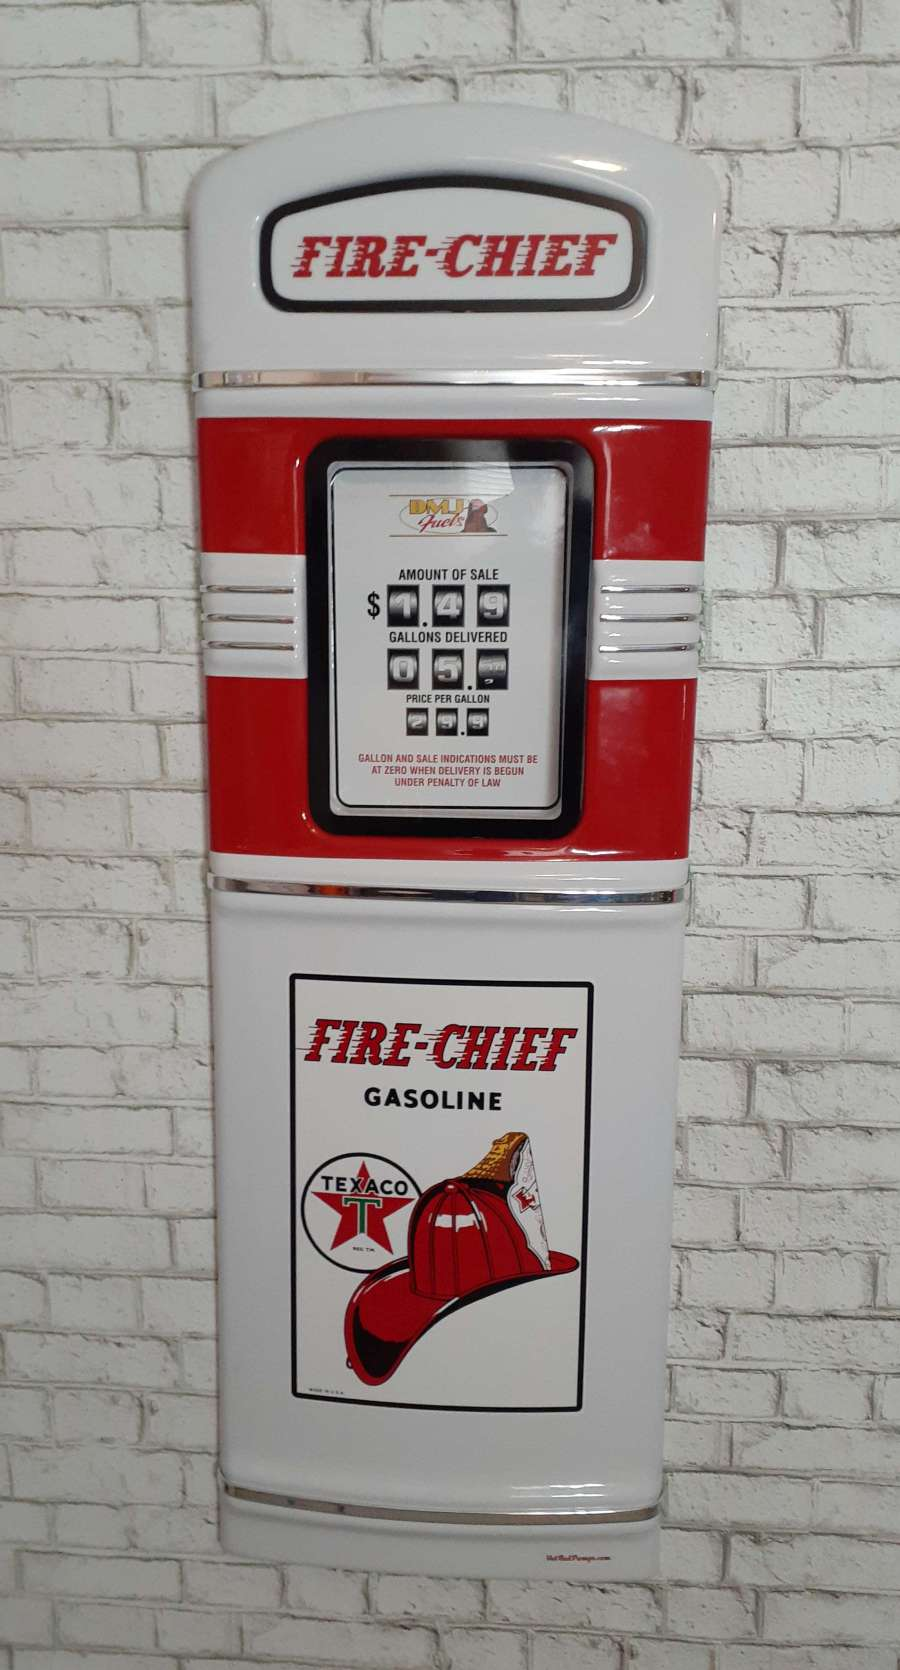 Texaco Fire Chief gas pump front